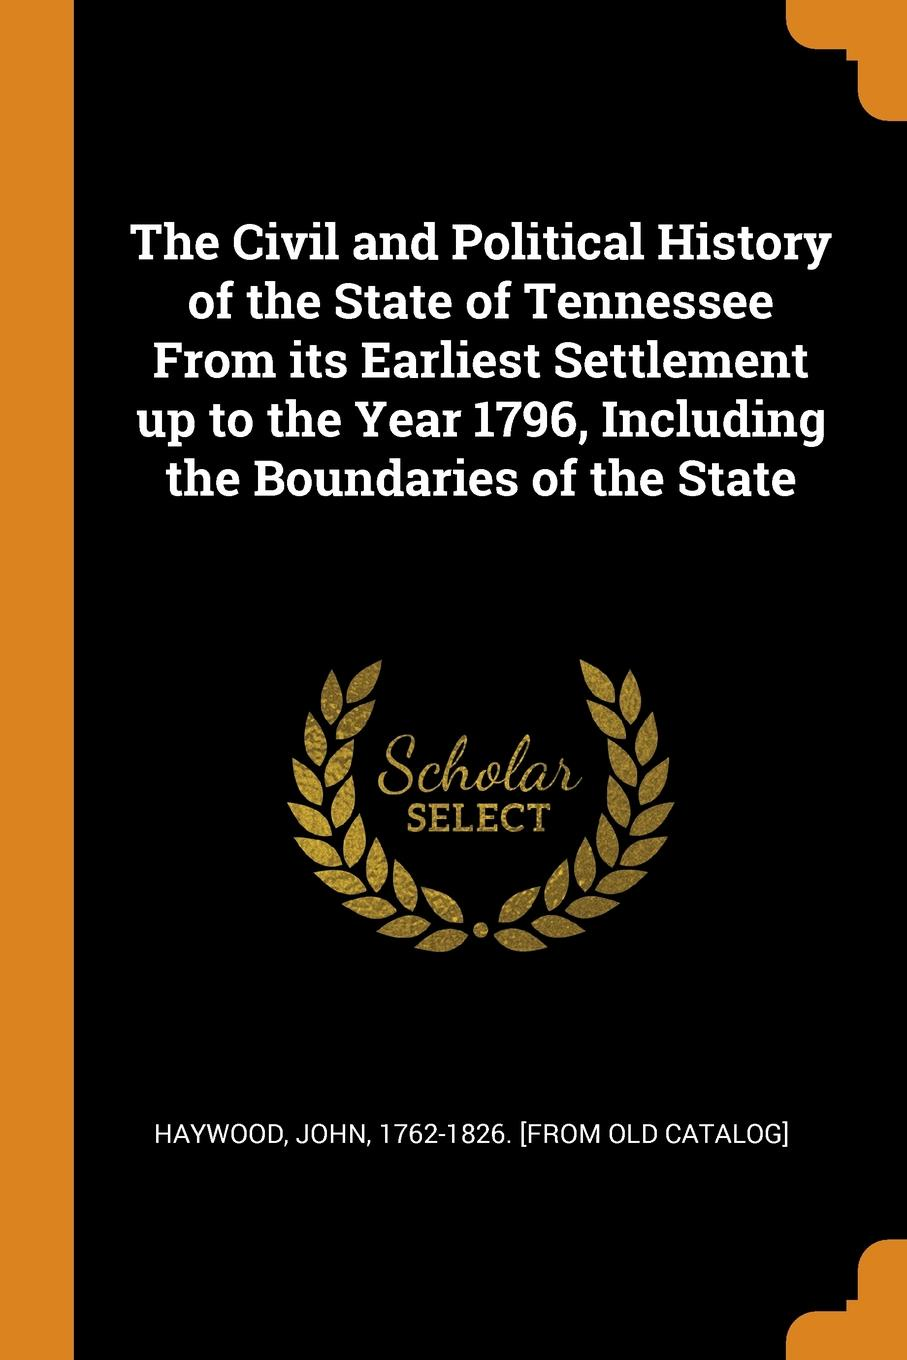 The Civil and Political History of the State of Tennessee From its Earliest Settlement up to the Year 1796, Including the Boundaries of the State charles richard tuttle the centennial northwest an illustrated history of the northwest being a full and complete civil political and military history of this great section of the united states from its earliest settlement to the present time